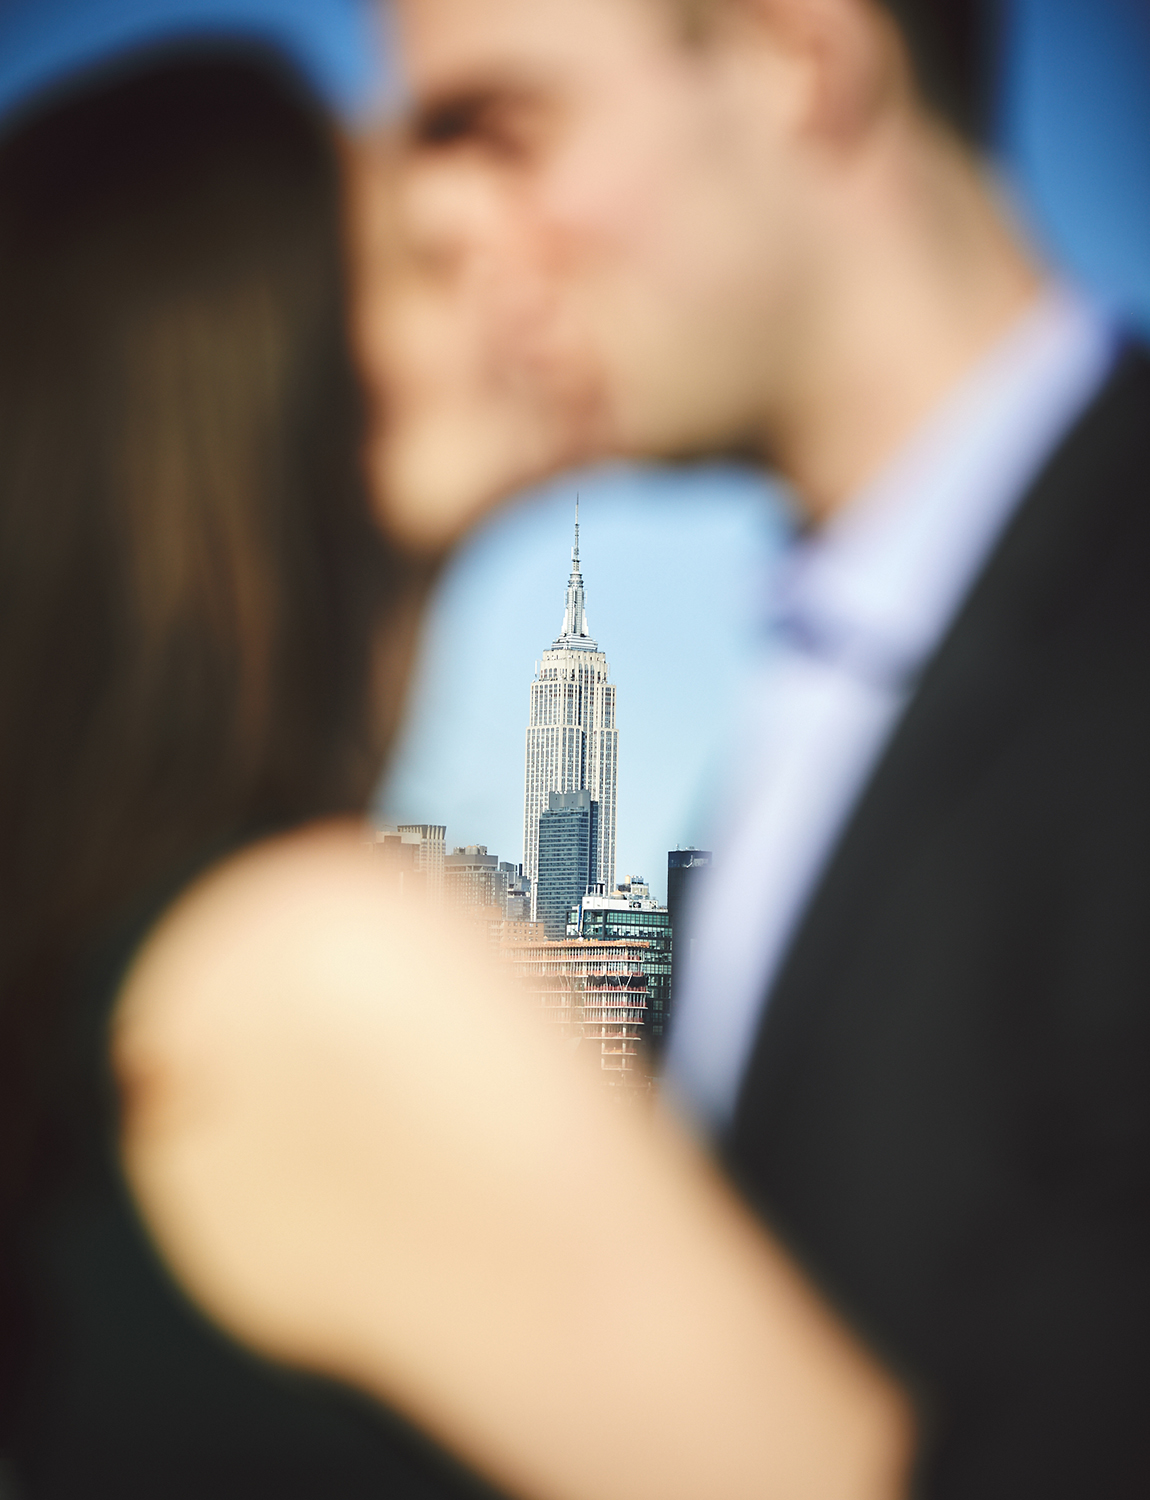 180422_StevensInstitureofTechnologyEngagementPhotography_HobokenEngagement Photography_By_BriJohnsonWeddings_0007.jpg